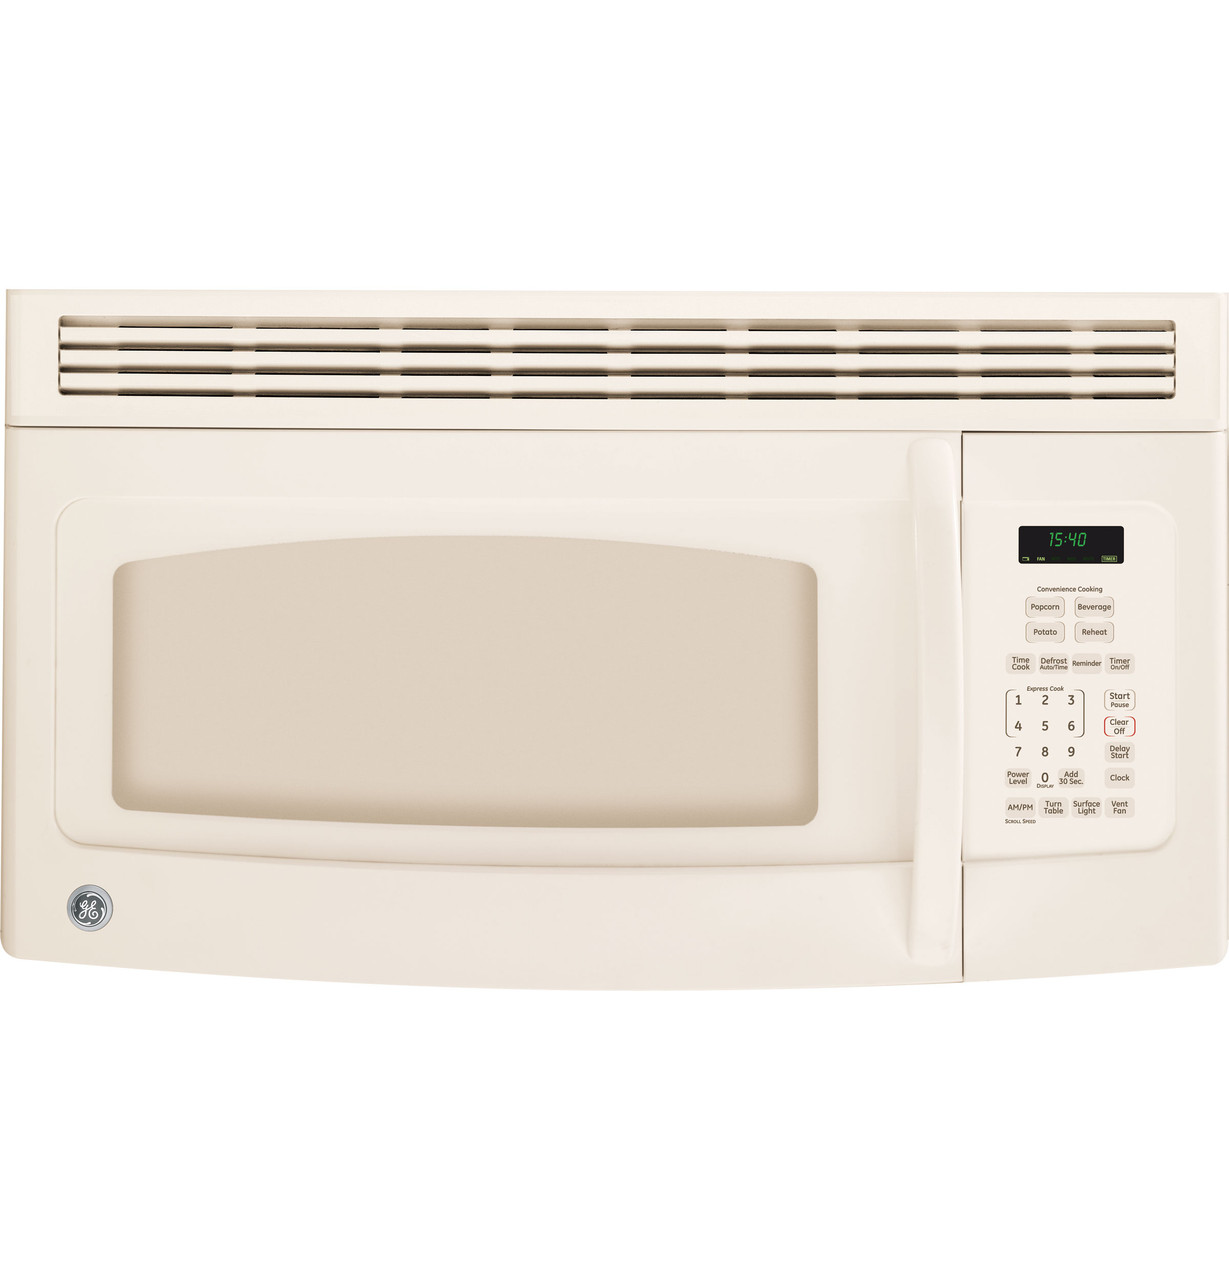 ge spacemaker over the range microwave oven jvm1540dmcc